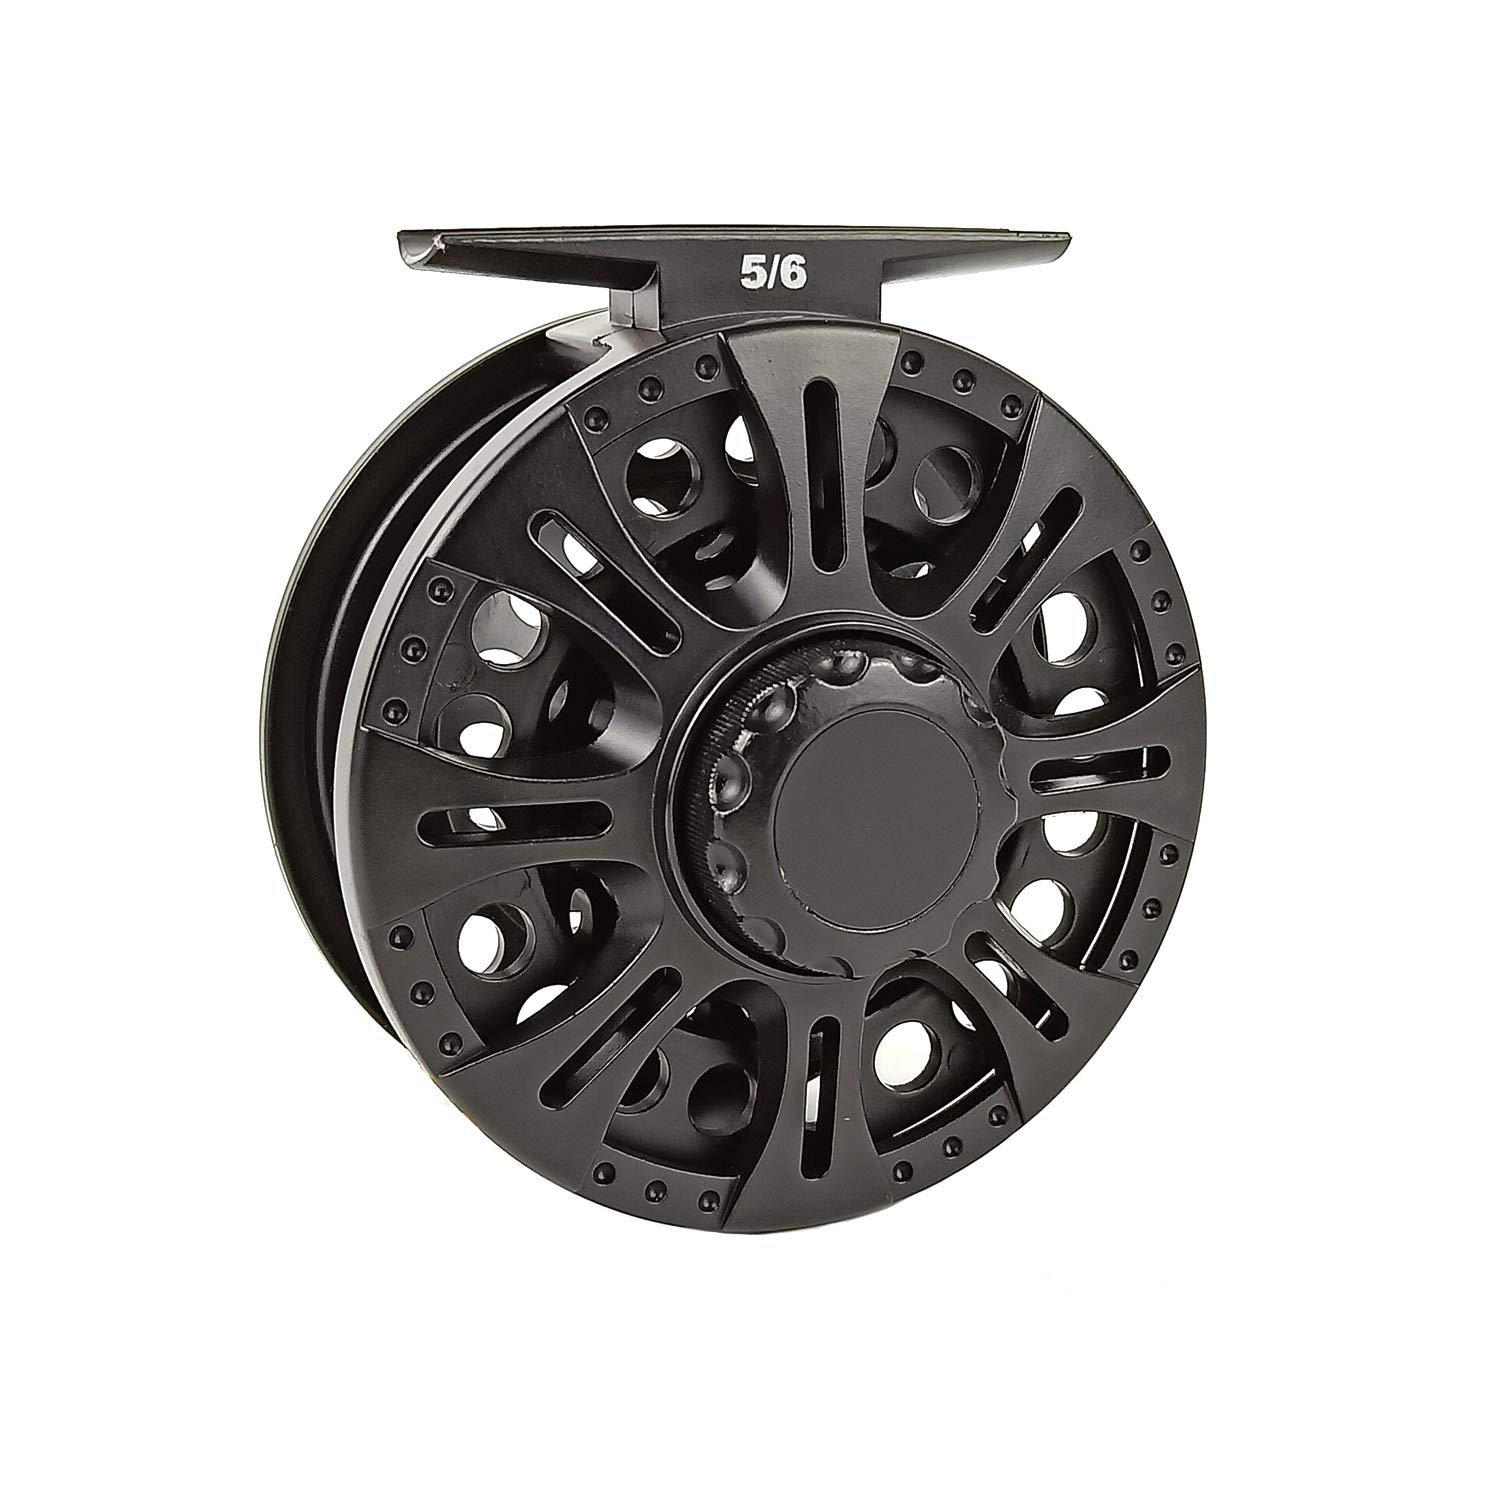 Aventik Z Fly Reel Center Drag System Classic III Graphite Large Arbor Sizes 3 4, 5 6, 7 8 Fly Fishing Reels